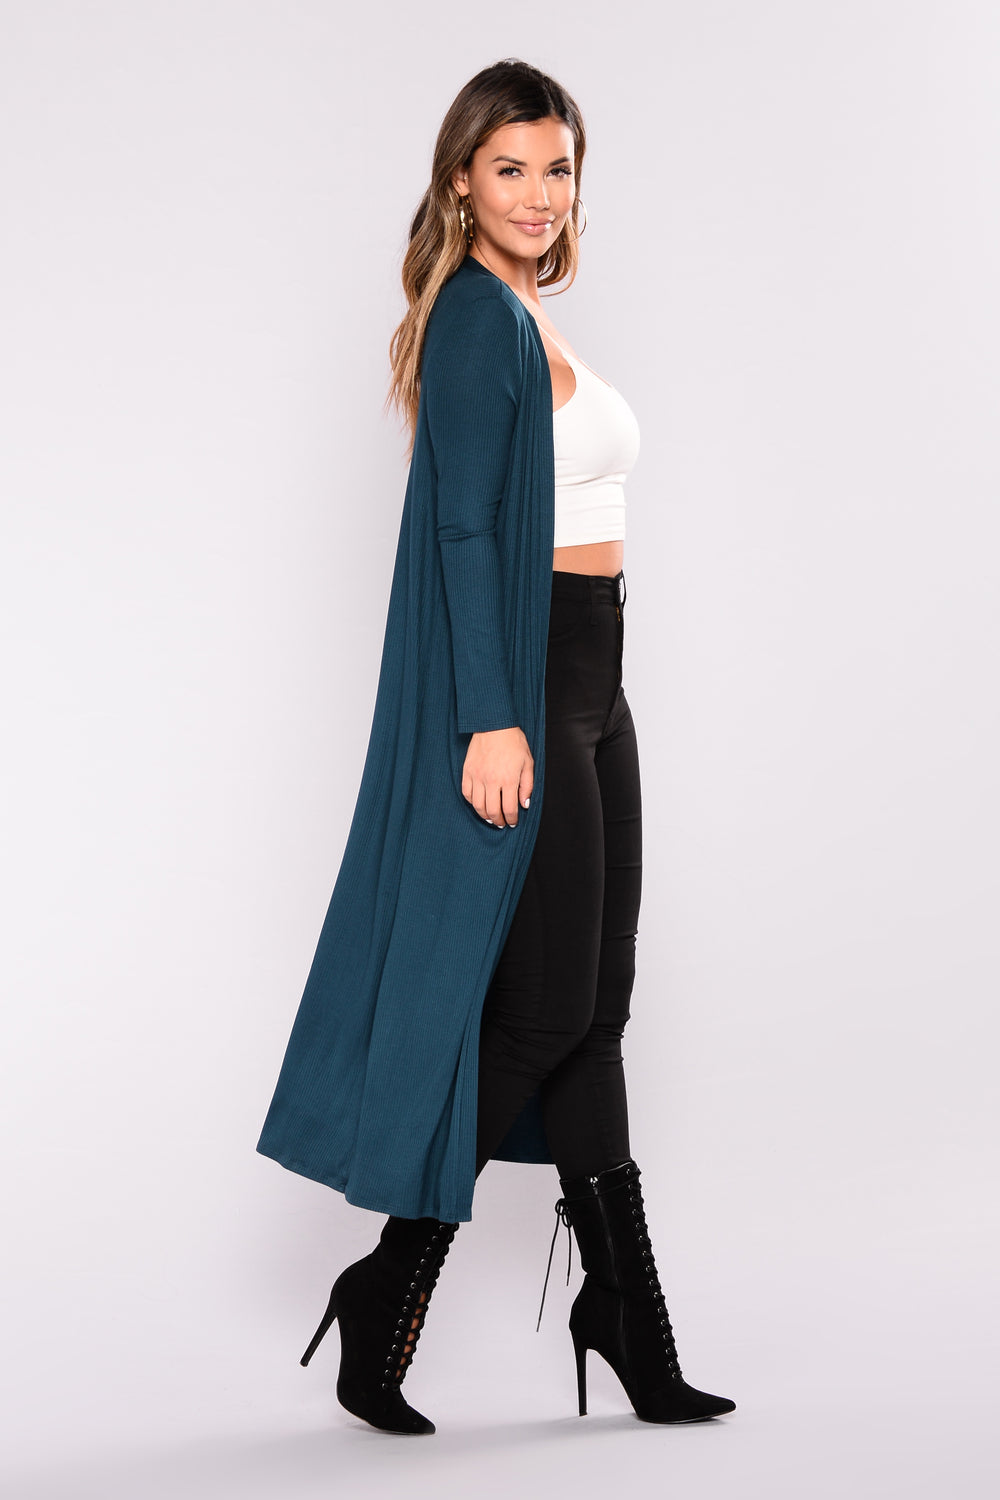 Must Have Basic Duster - Teal